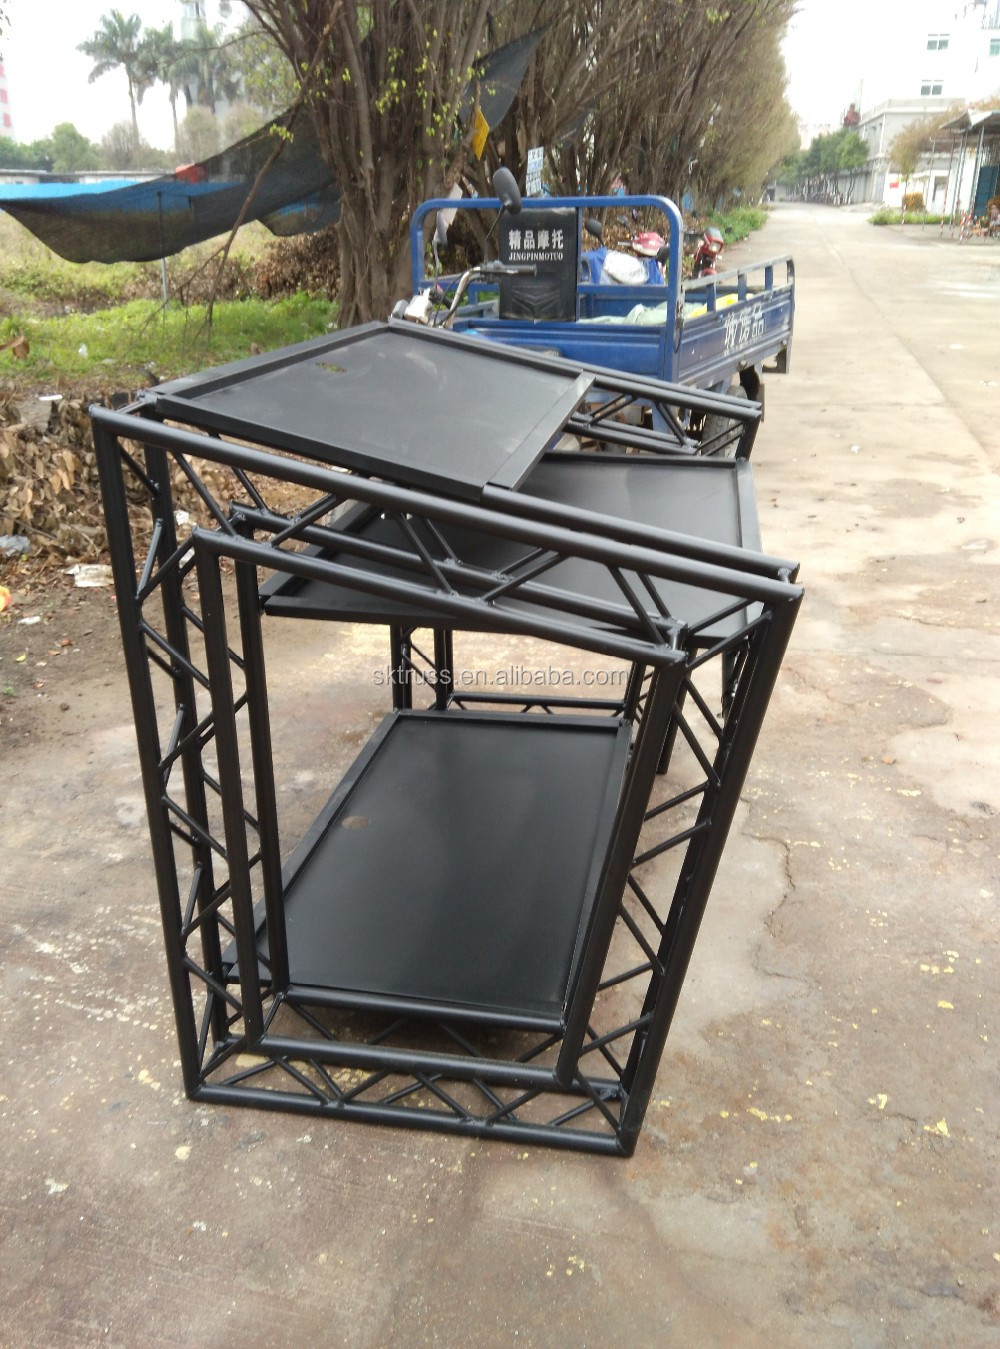 Outdoor Movable Aluminum Dj Folding Table Dj Booth Factory Price